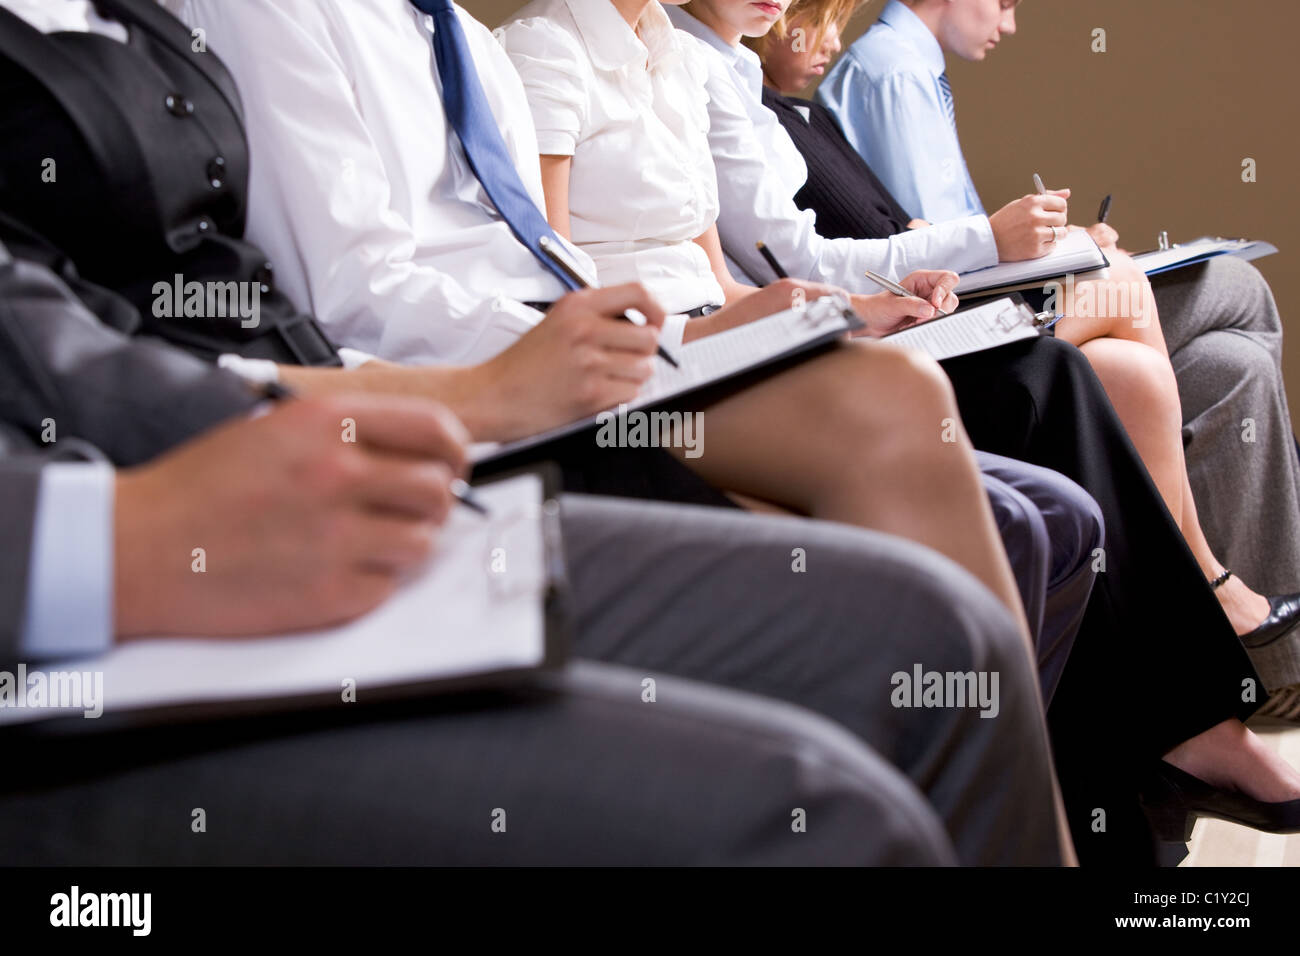 Close-up of business people making notes or writing business plan at conference - Stock Image